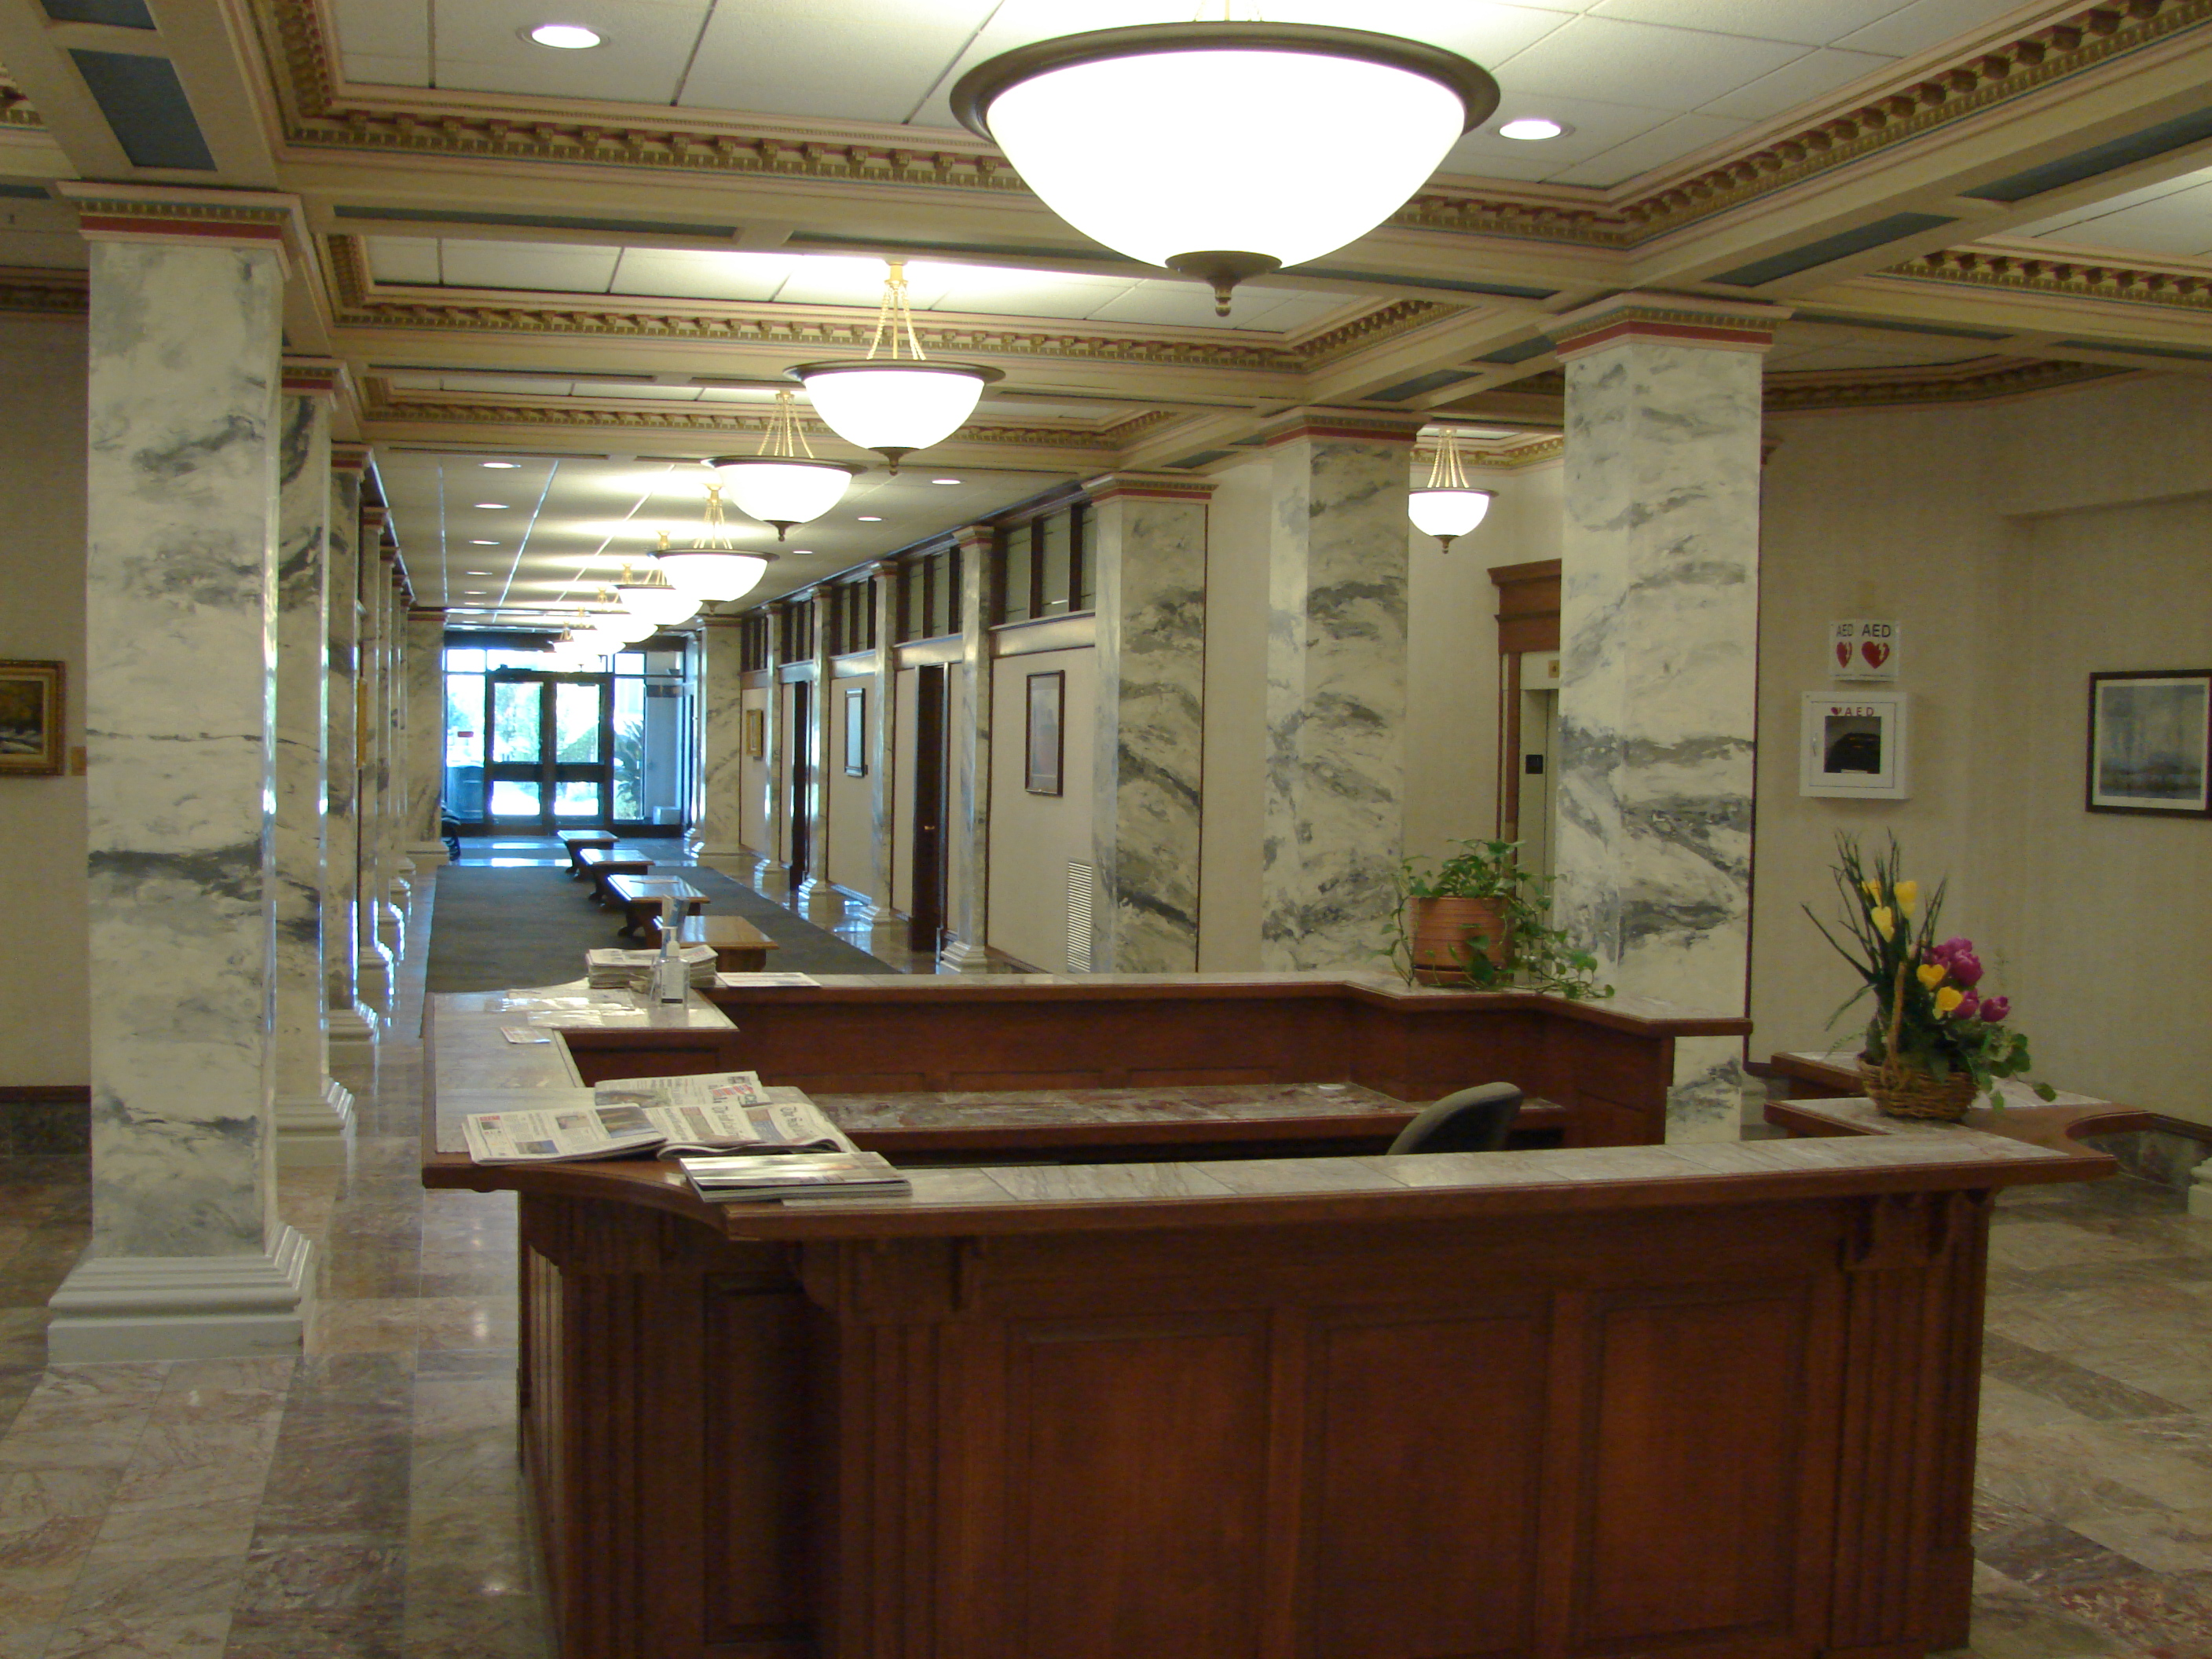 File:South On Lower Floor Of Historic Utah County Courthouse, Jul 15